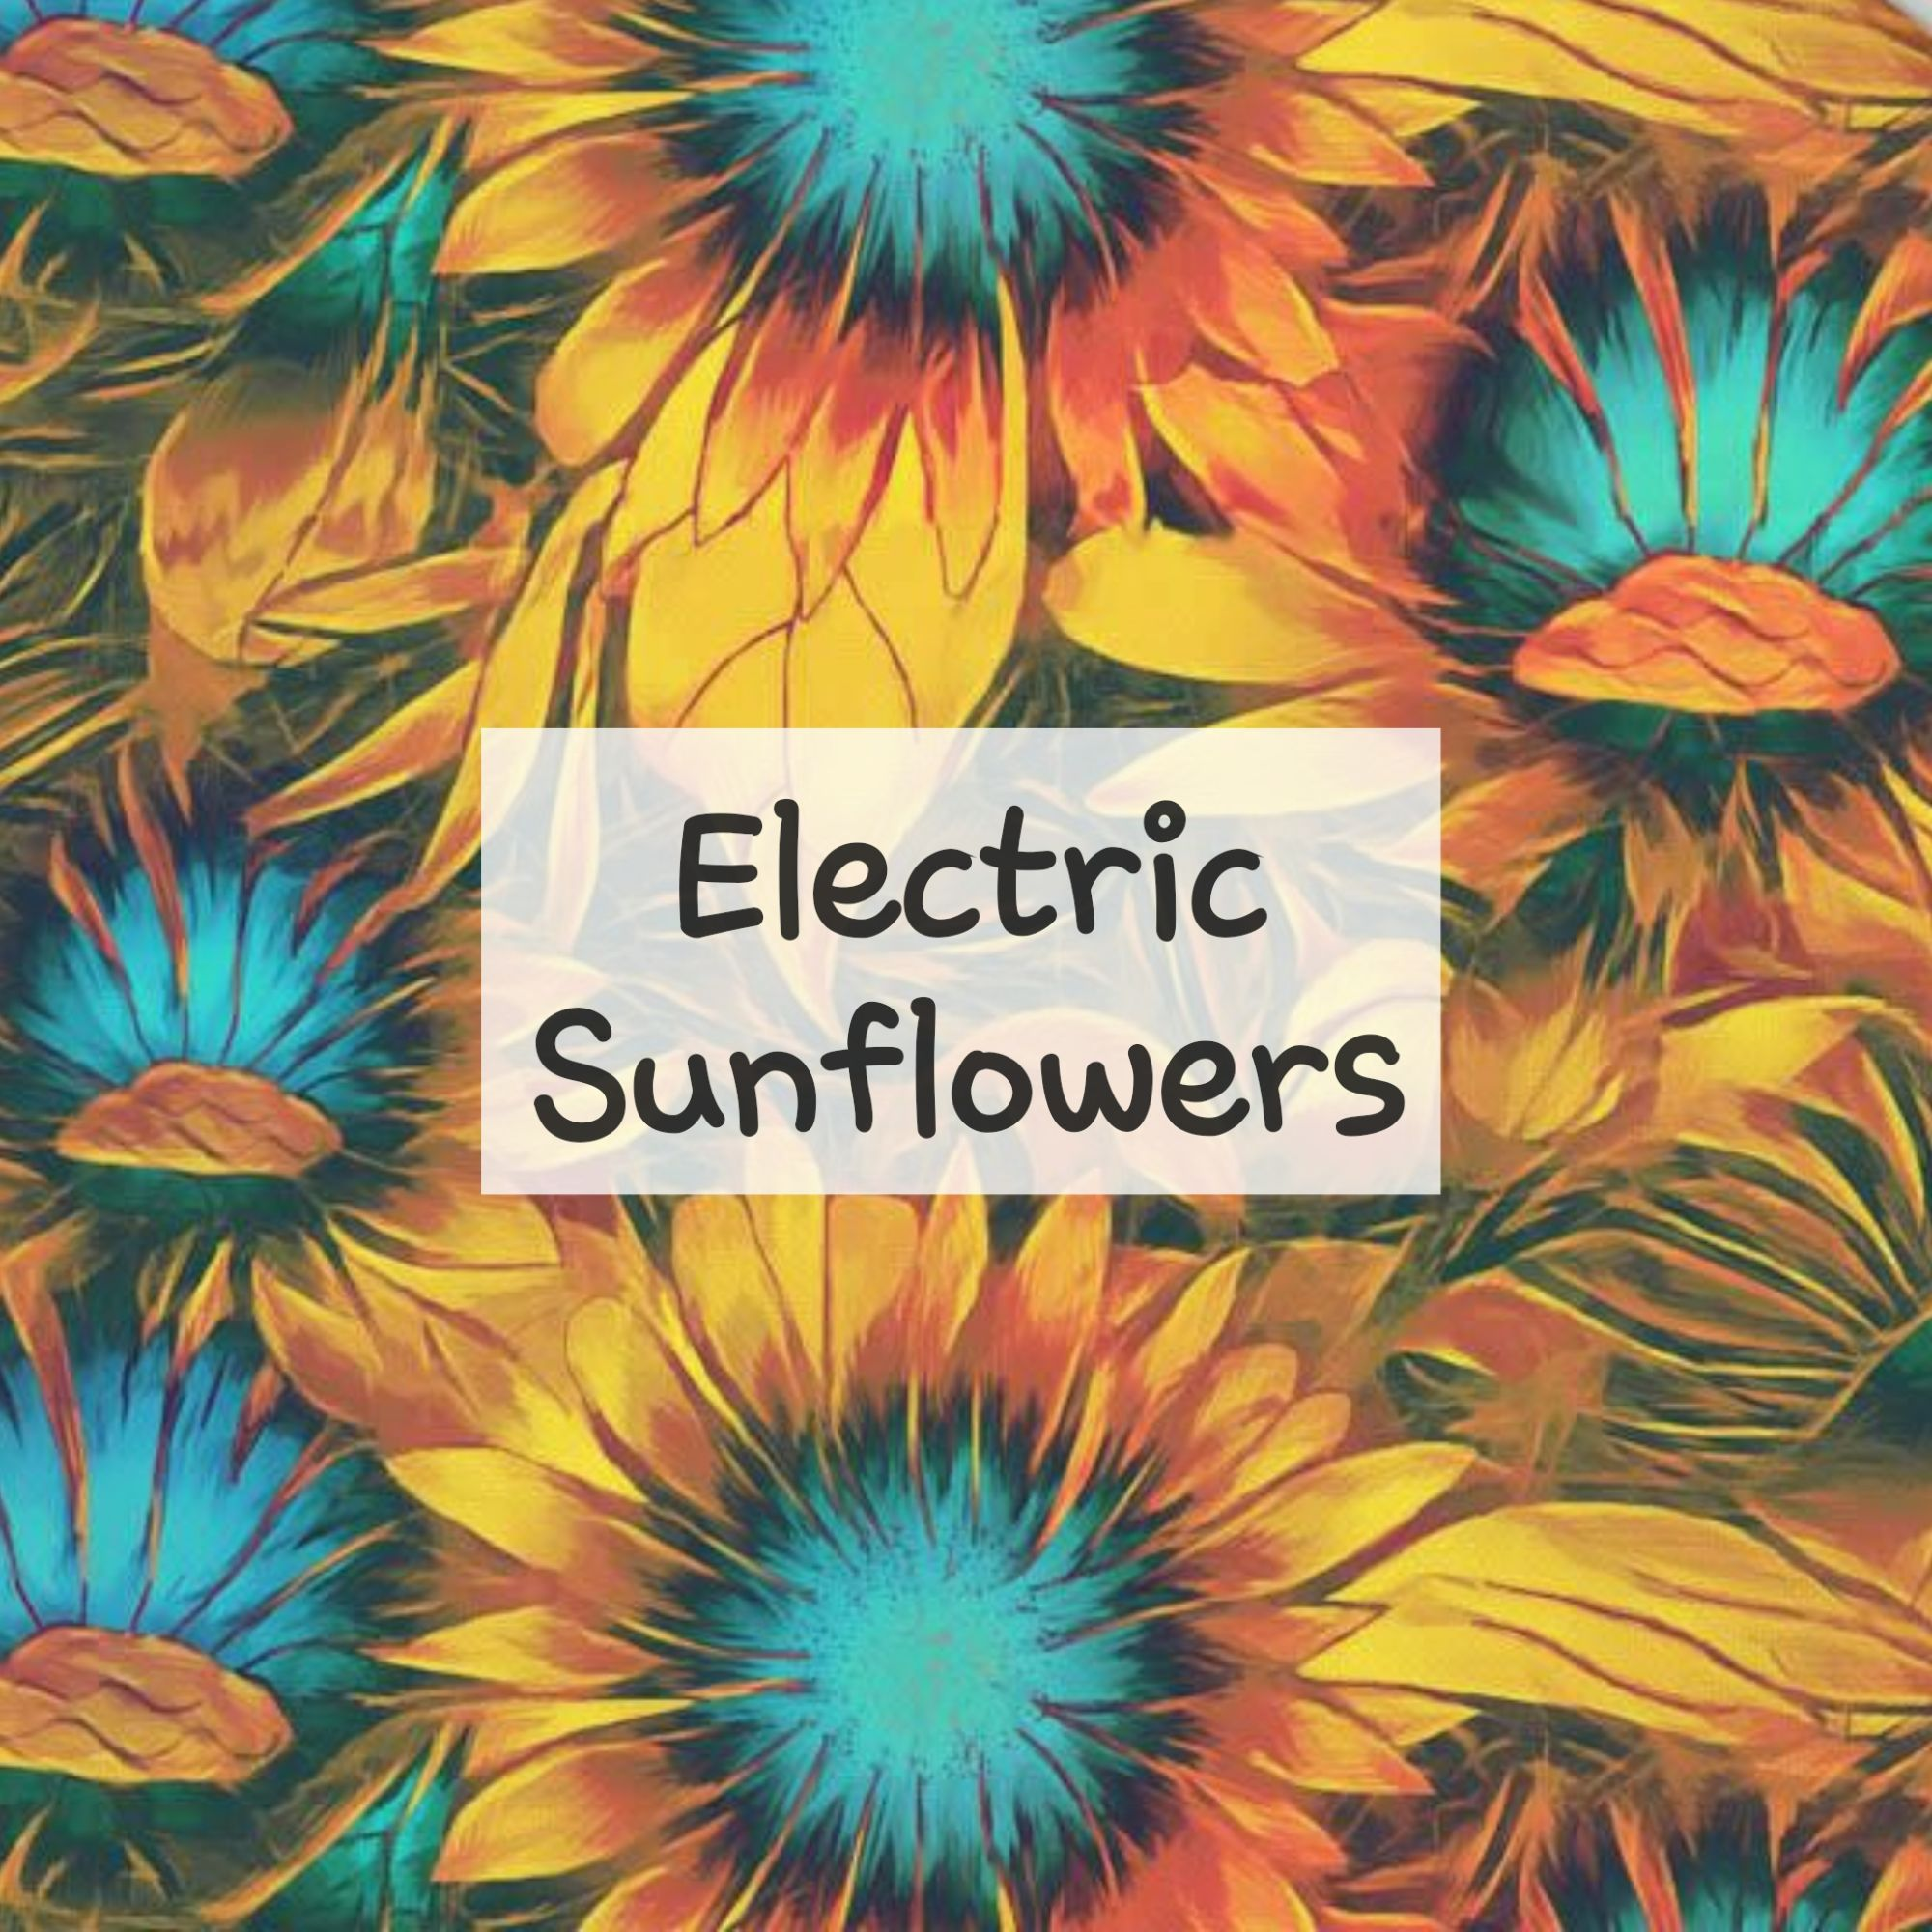 Electric Sunflowers